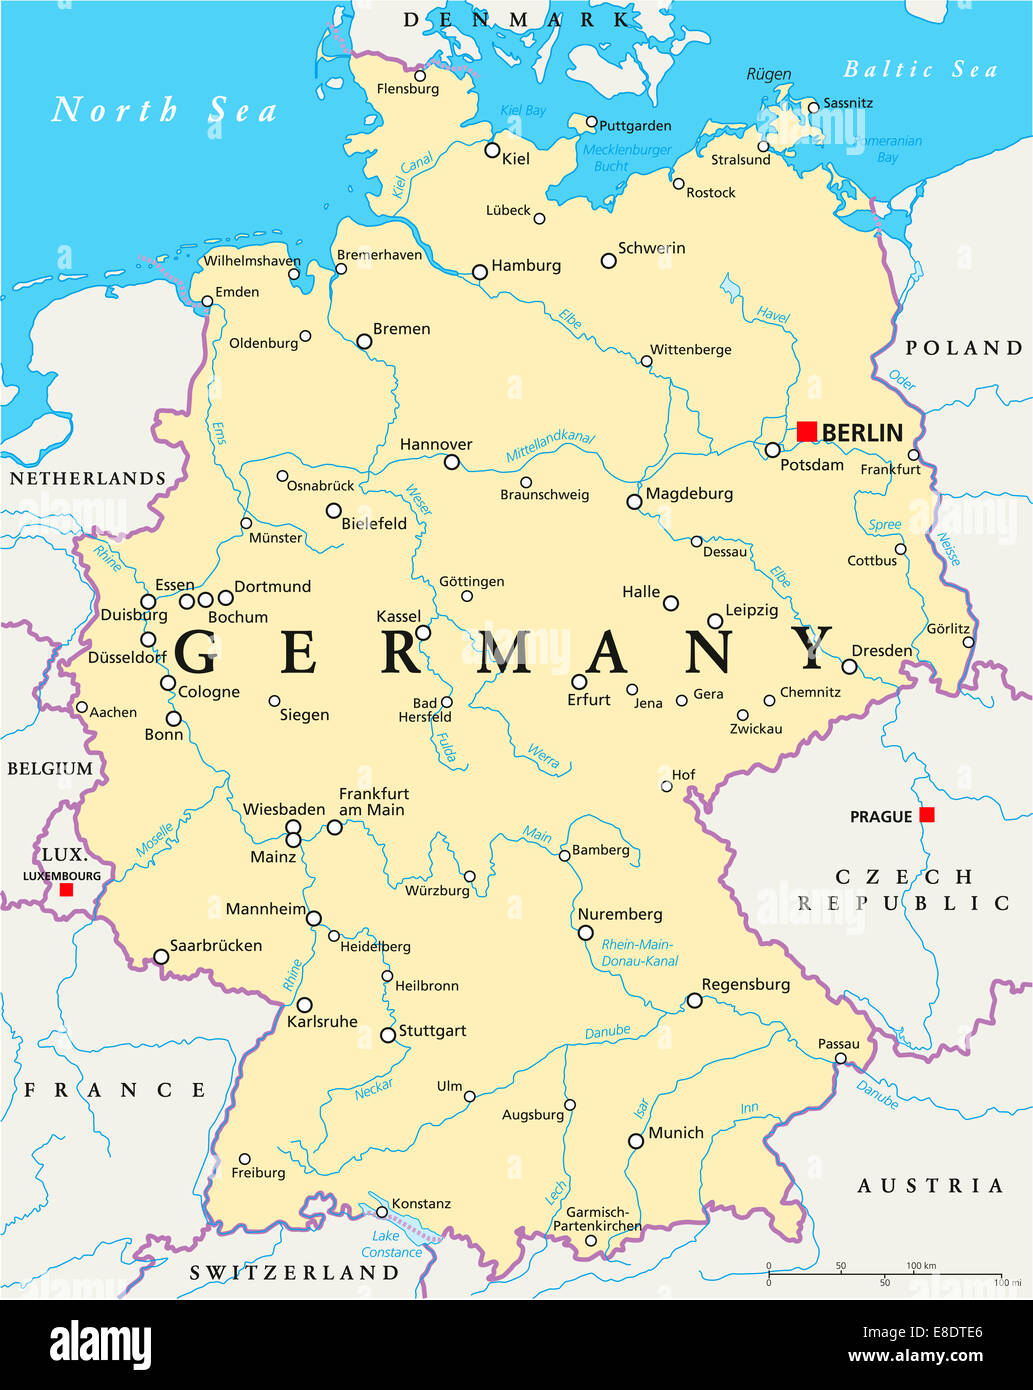 germany political map with capital berlin national borders most important cities rivers and lakes english labelingscaling